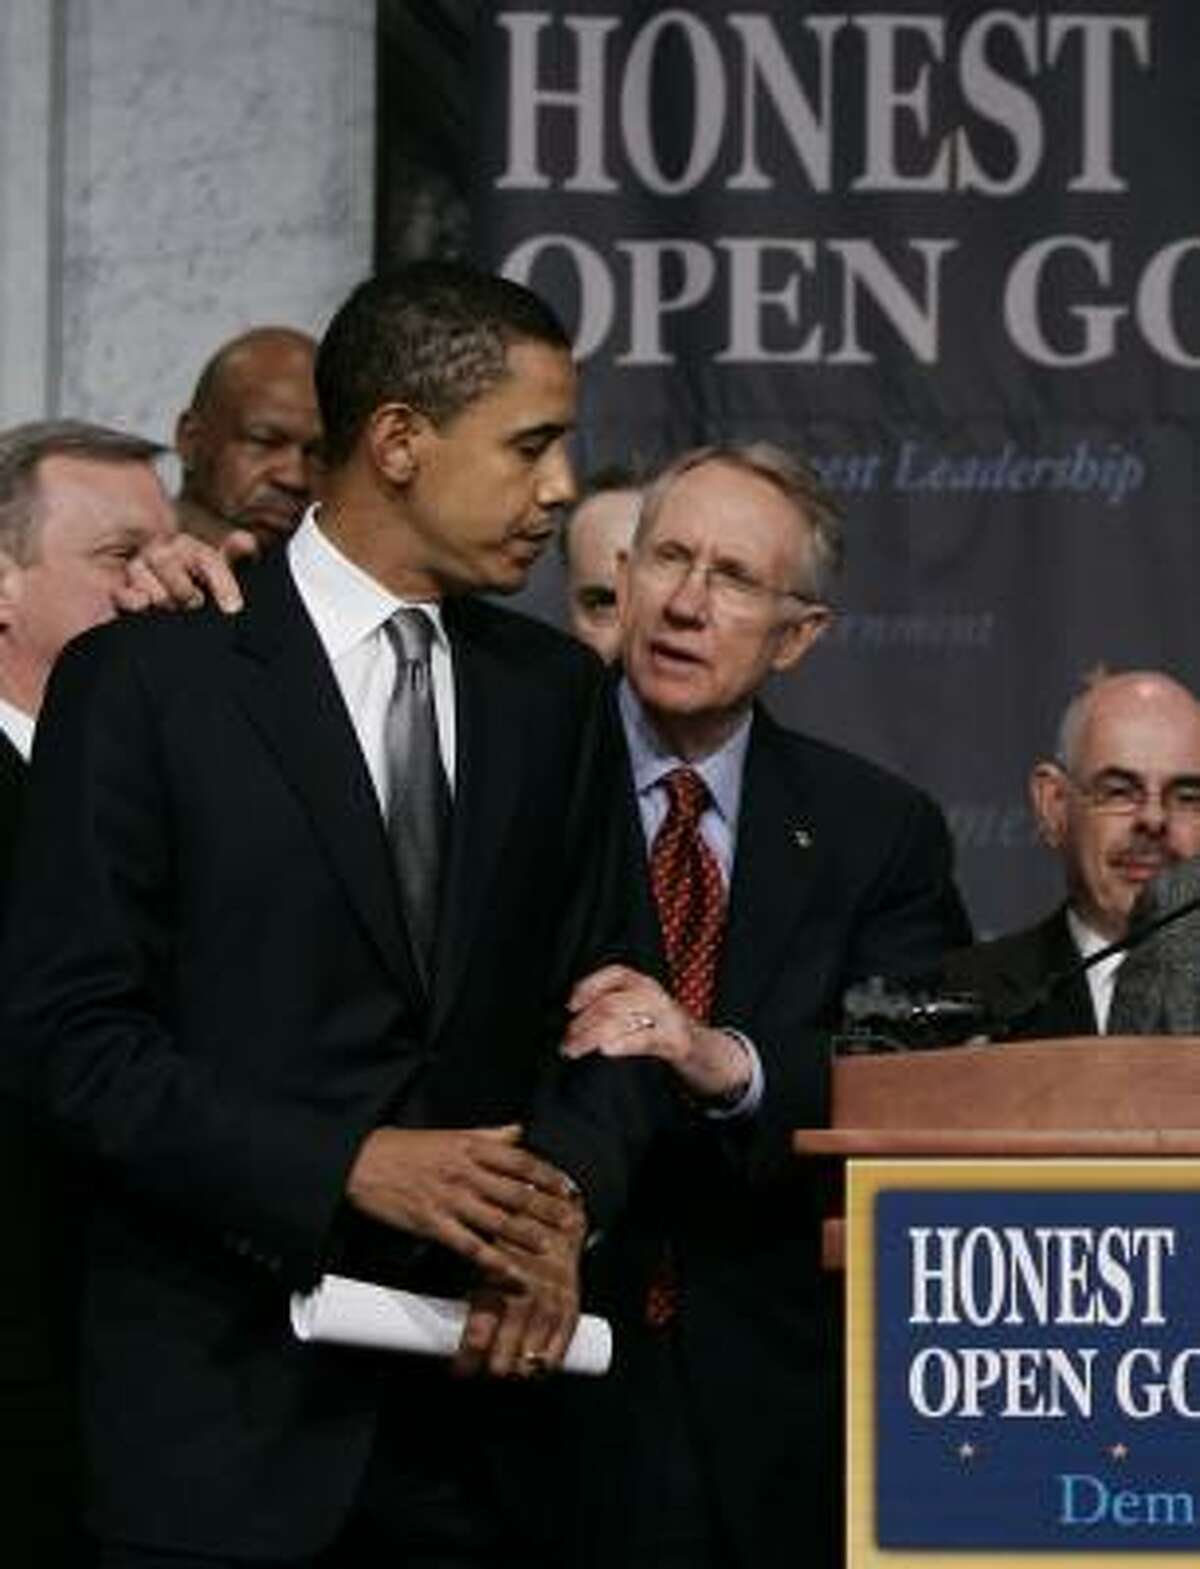 Senate Democratic Leader Harry Reid, shown with then-Sen. Barack Obama in 2006, apologized on Saturday for